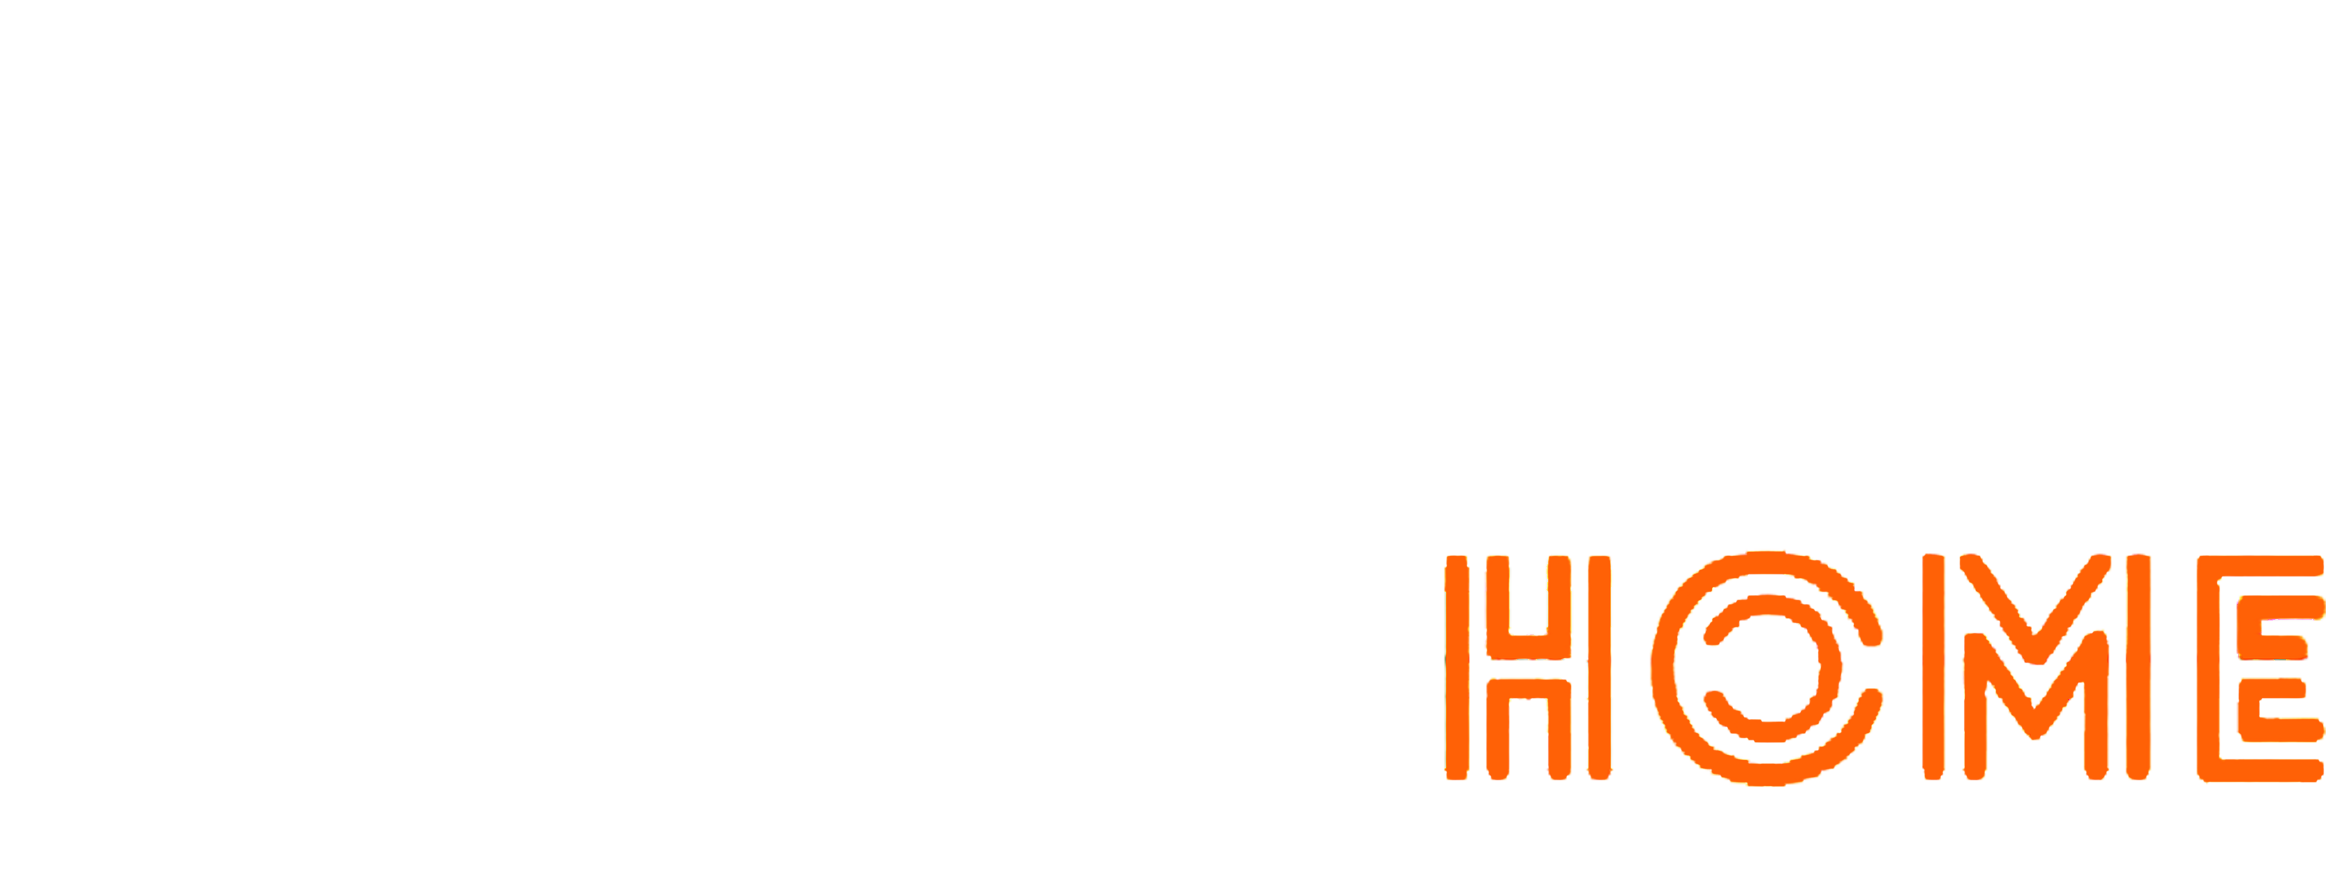 Project Home